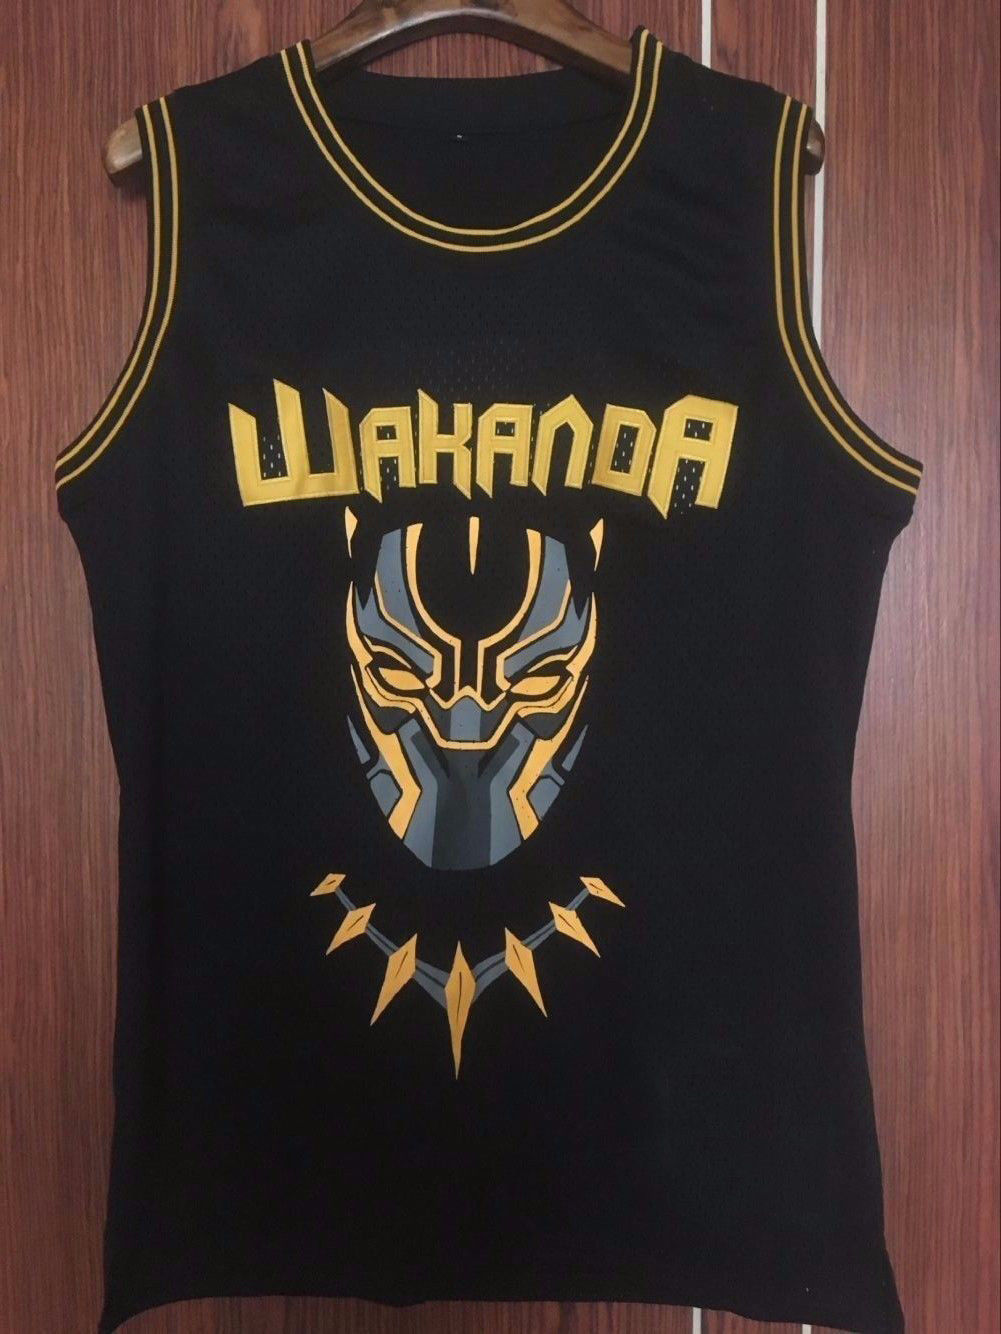 Black Panther Movie Wakanda T'Challa Killmonger #2 Basketball Jersey